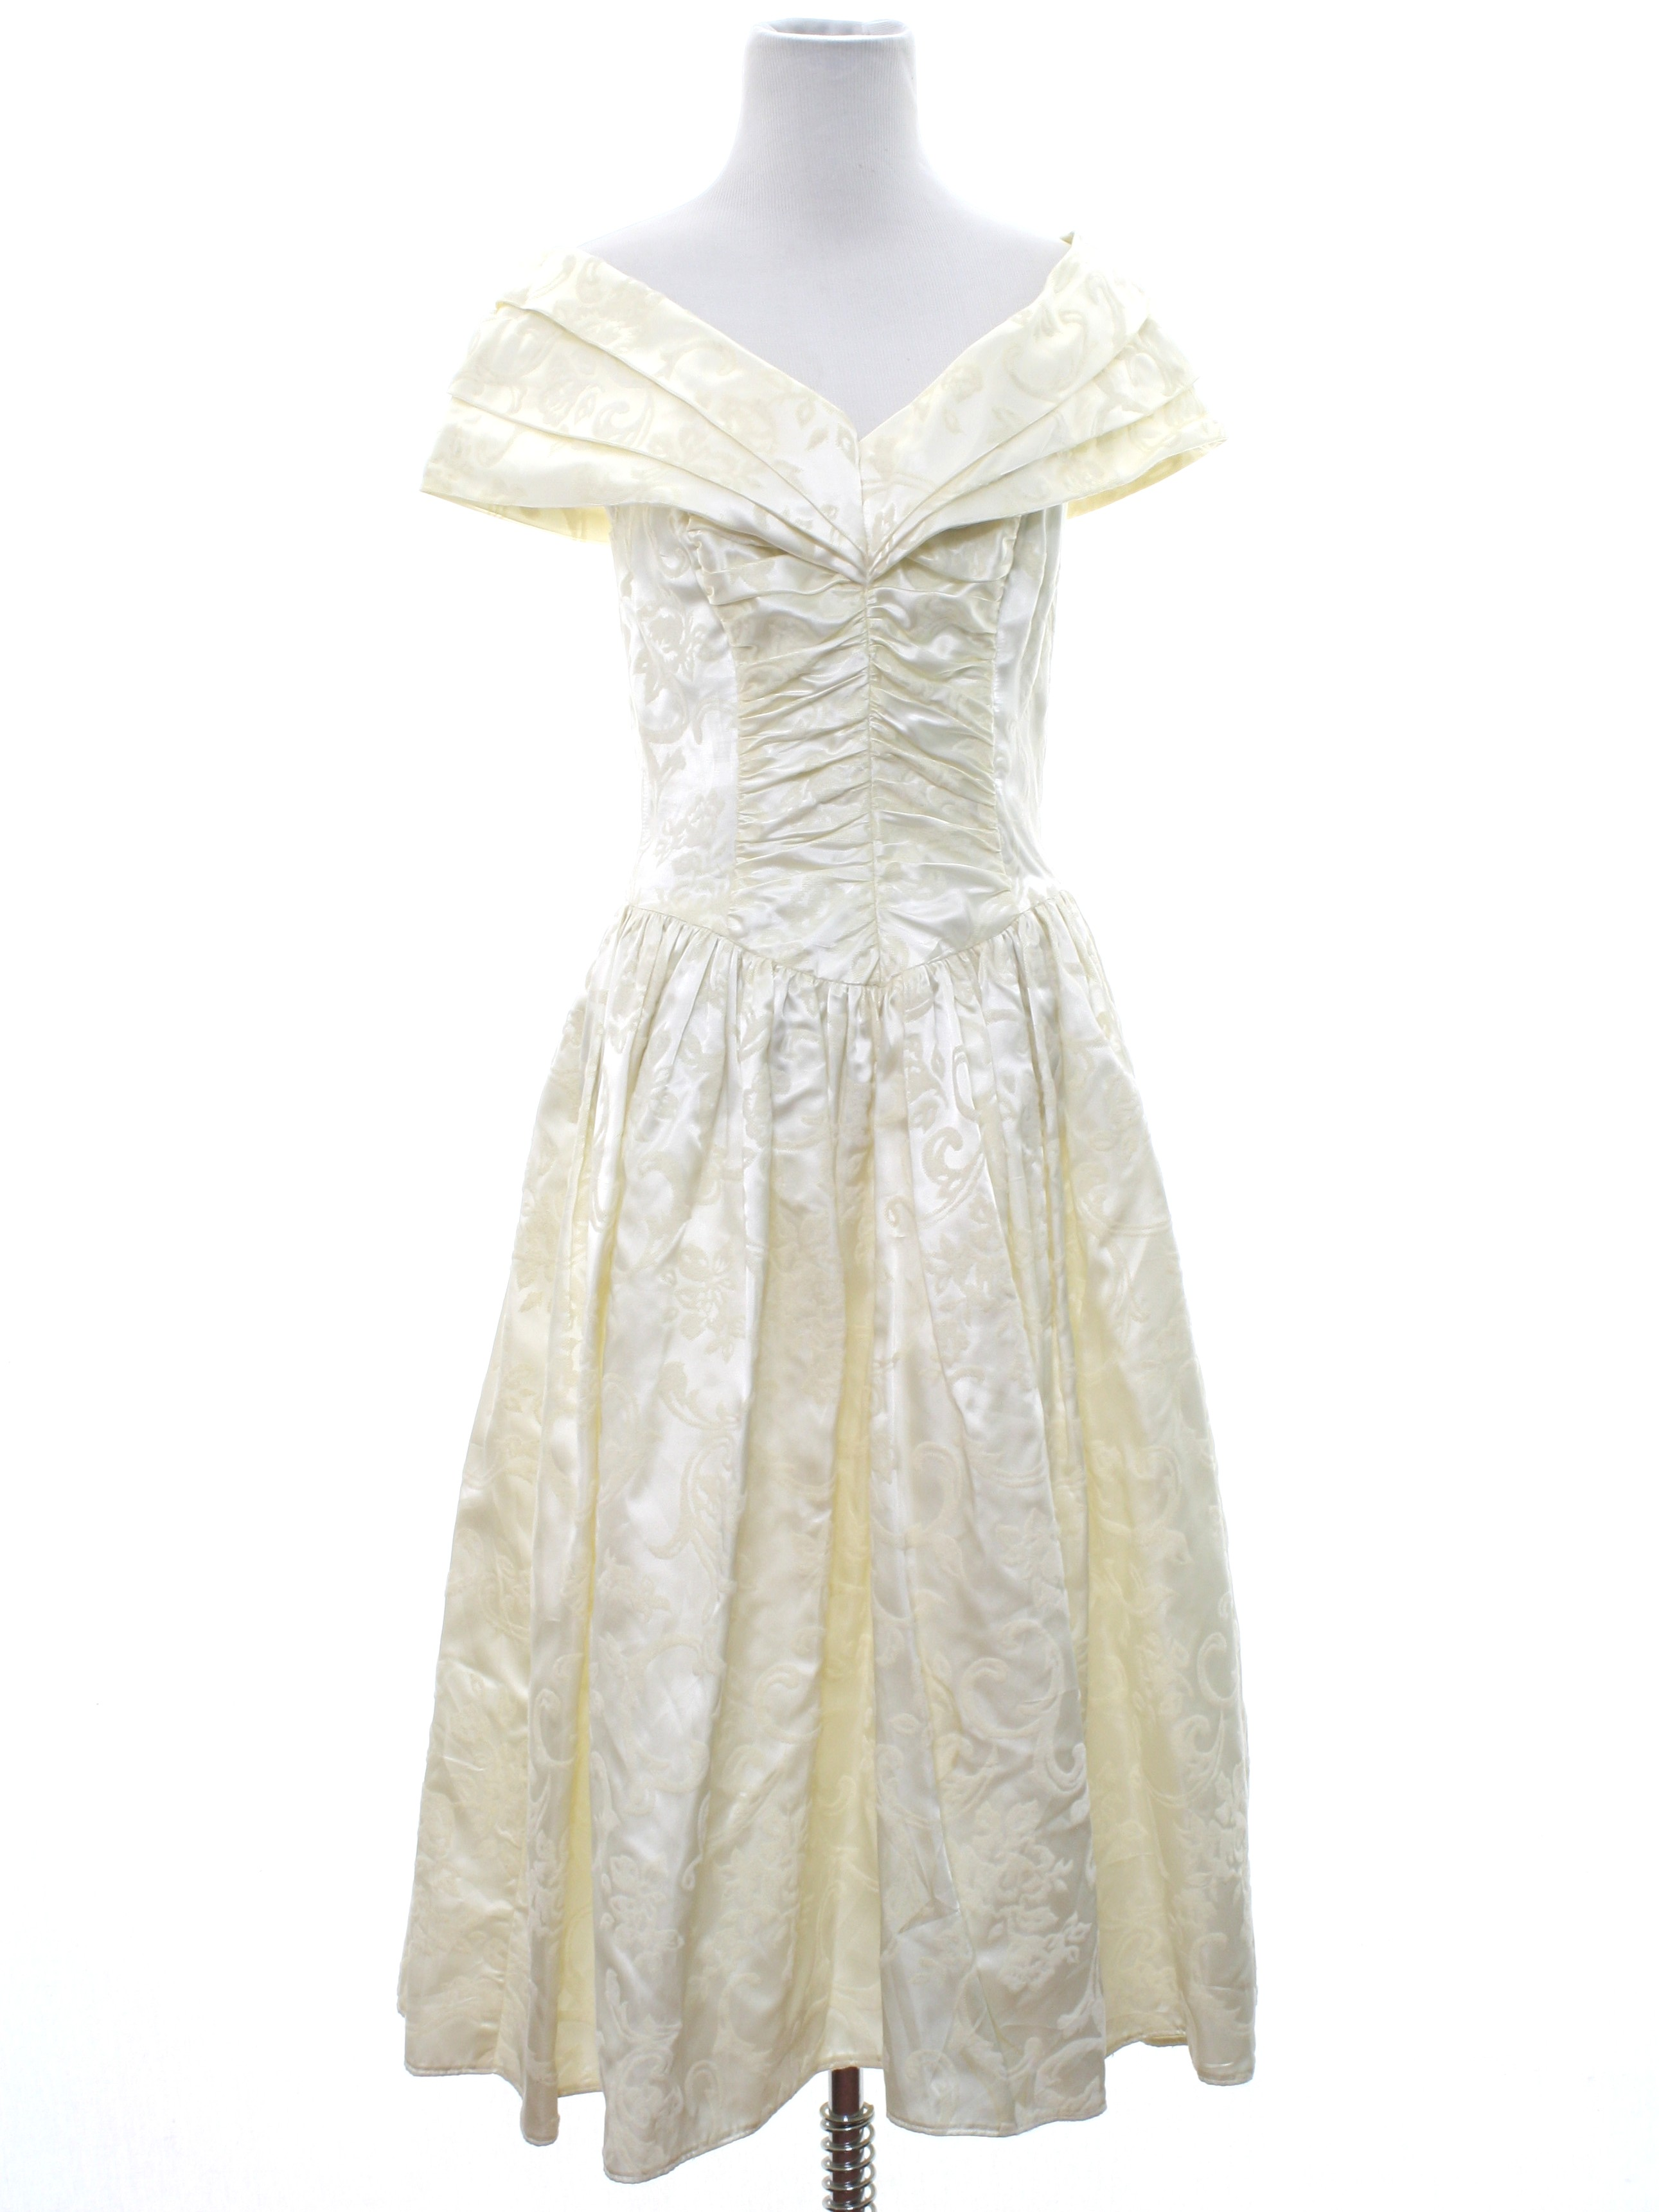 shop jessica mcclintock wedding dresses s Gunne Sax by Jessica McClintock Designer Totally 80s Prom Cocktail or Wedding Dress 85 00 Not in stock Item No